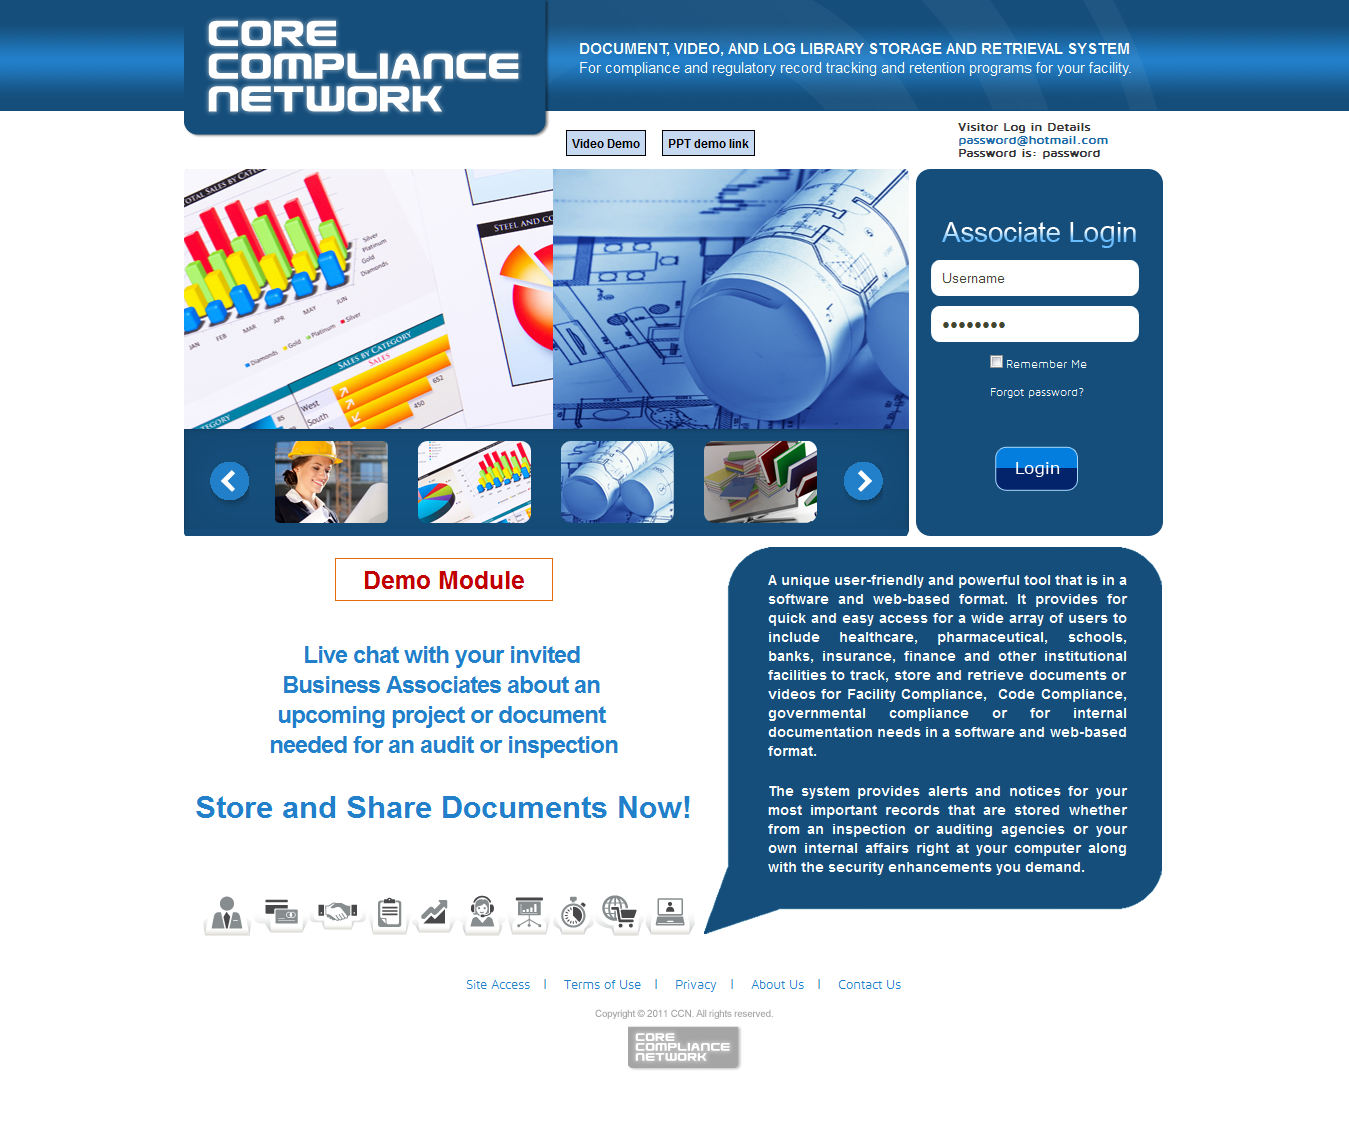 corecompliancenetwork